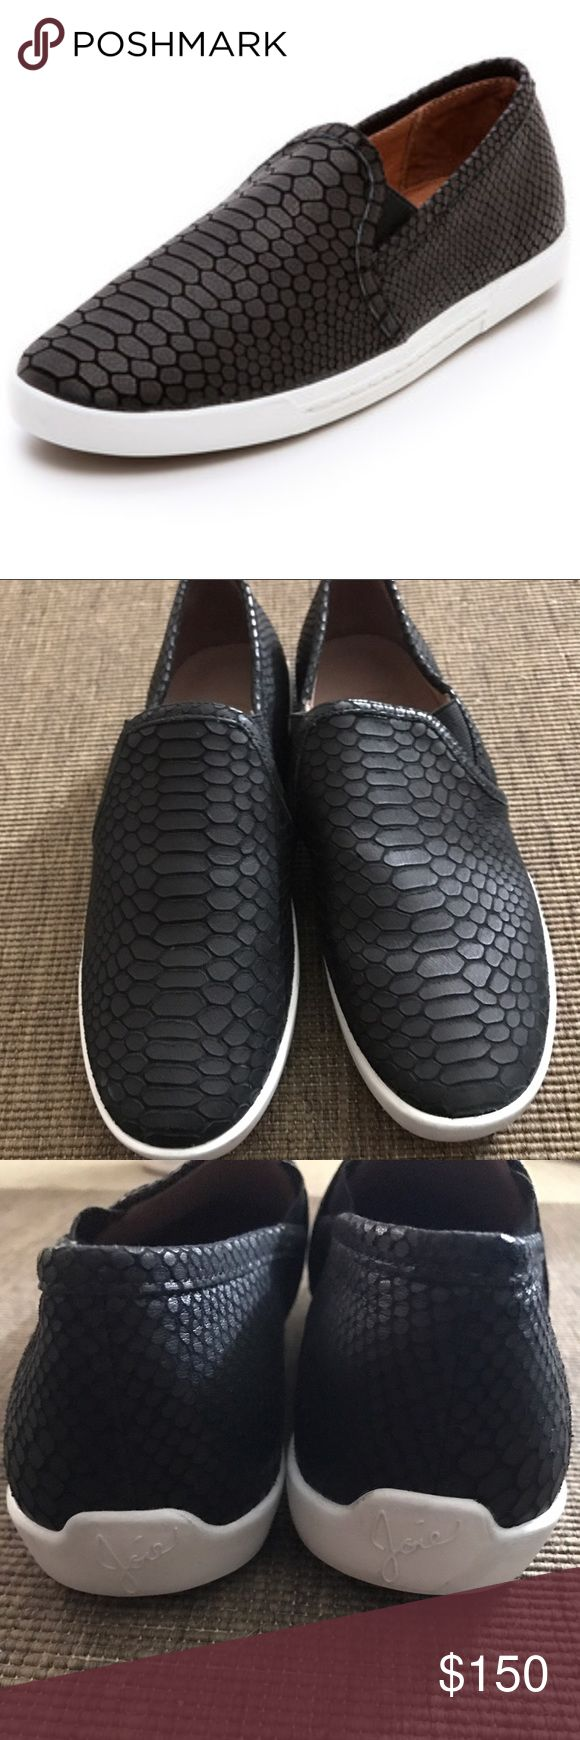 Joie Kidmore Slip On sneaker Black python print New never worn black Joie slip on shoe Faux Python Print. Womens size 38 there is a mark on the back see pic. New with defects  floor model no box Joie Shoes Sneakers